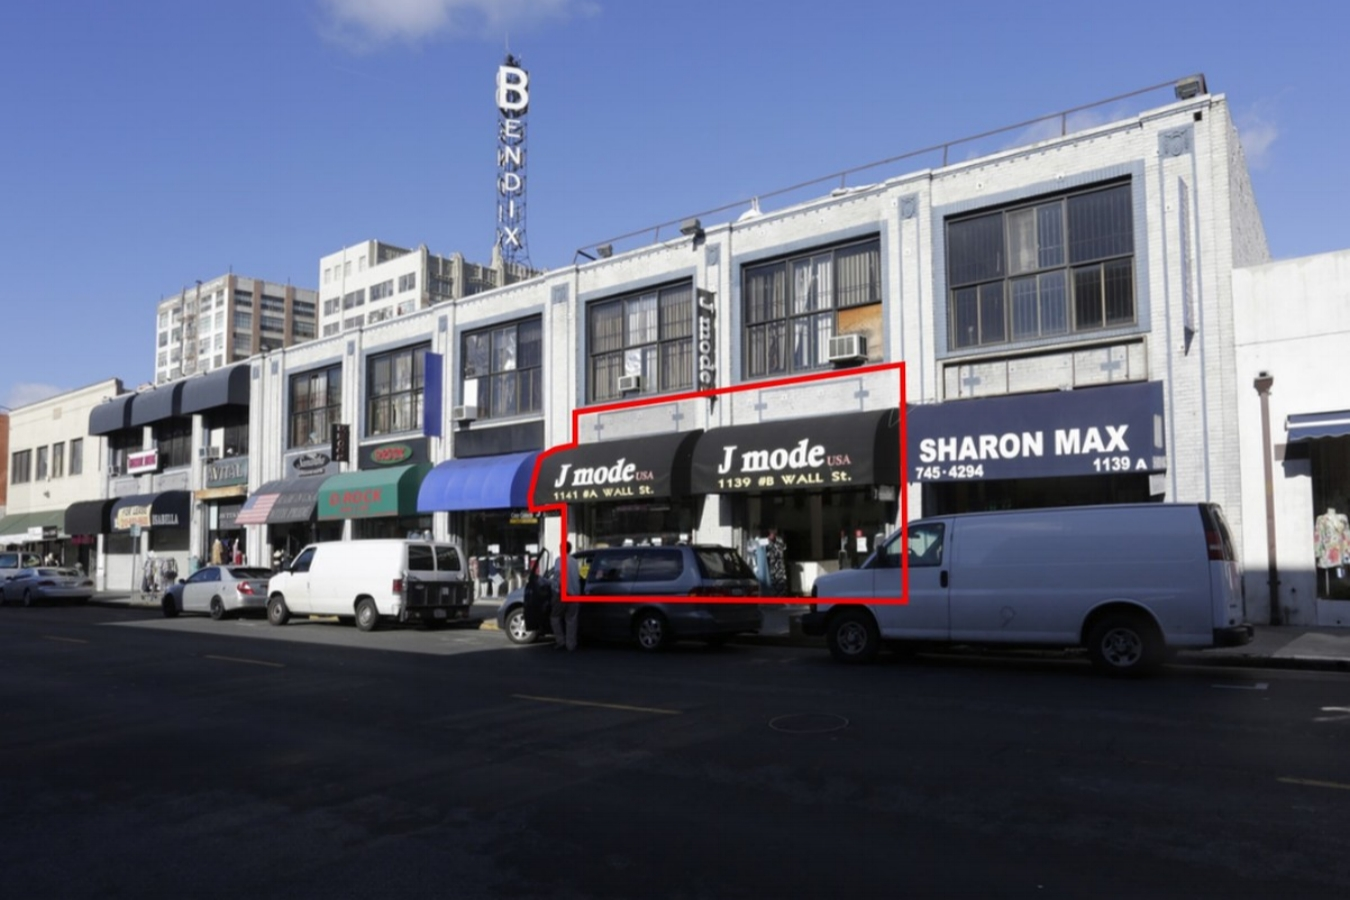 1139-1145 WALL STreet, LOS ANGELES, CA 90015 - LEASE RATE: $ 1.75/ SFGLA: +/- 45,000 SF- Bus Line.- Signage.- Signalized Intersection.